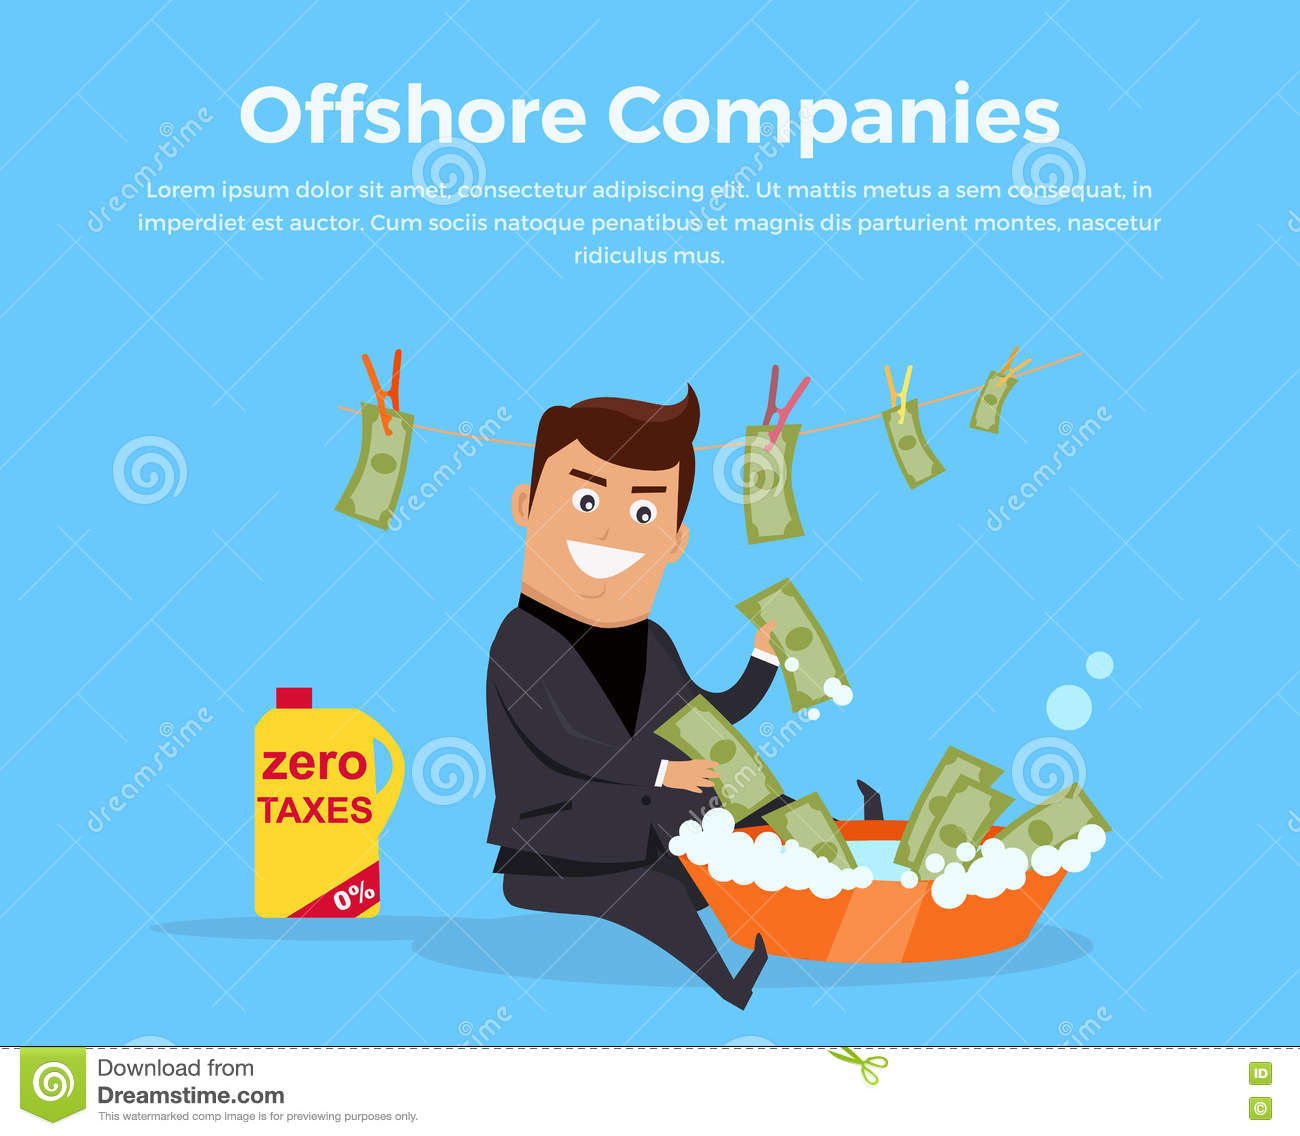 essay offshoring Outsourcing vs offshoring  so what are the pros and cons of outsourcing take a look at our list pro 1: outsourcing can increase company profits.